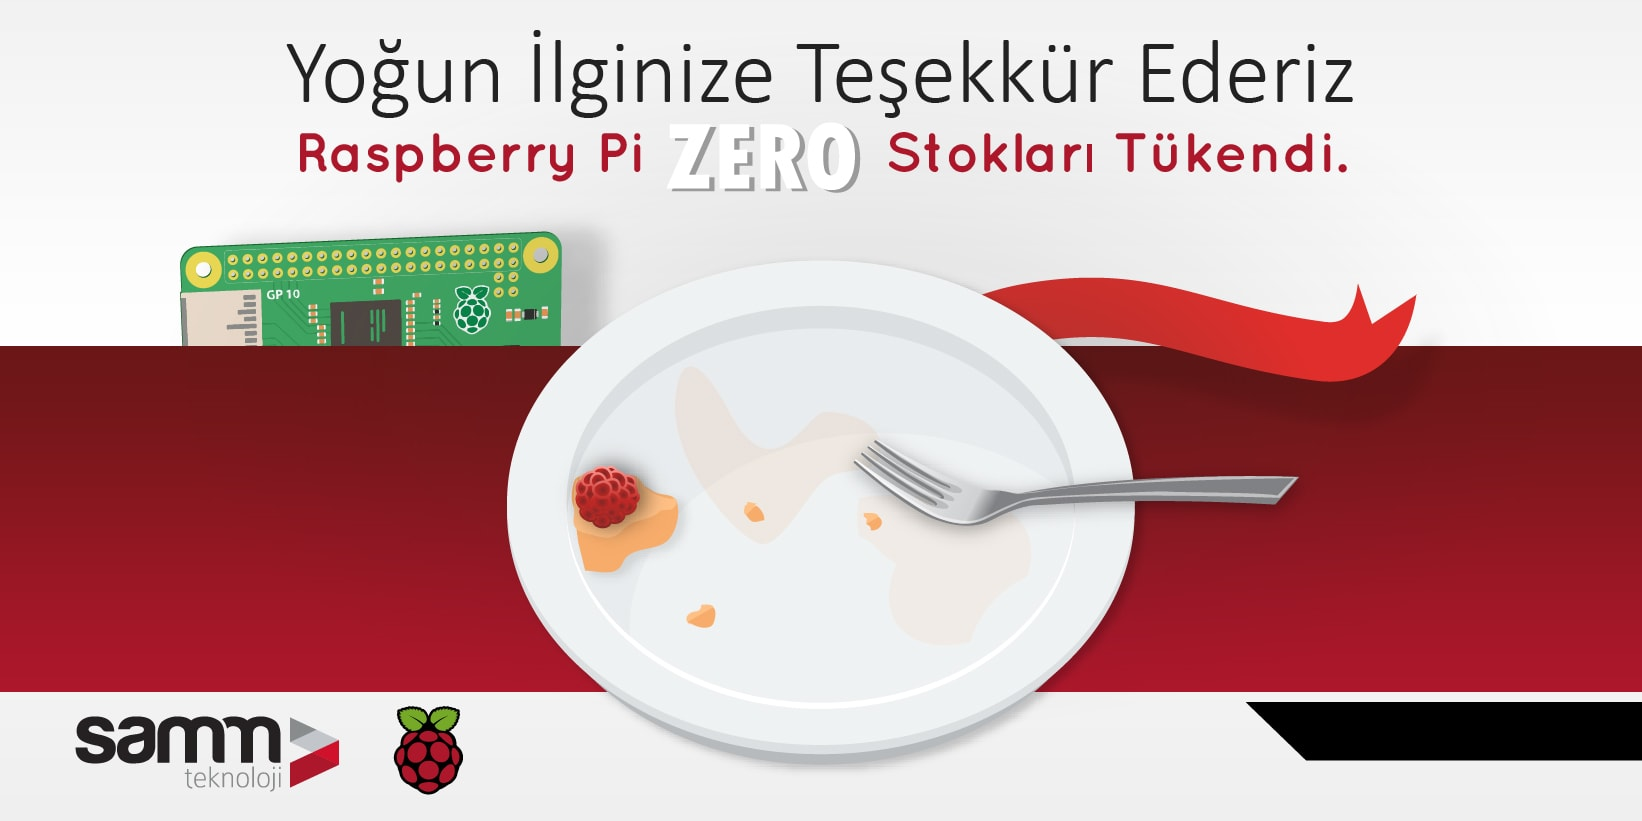 Raspberry Pi Zero is Sold Out